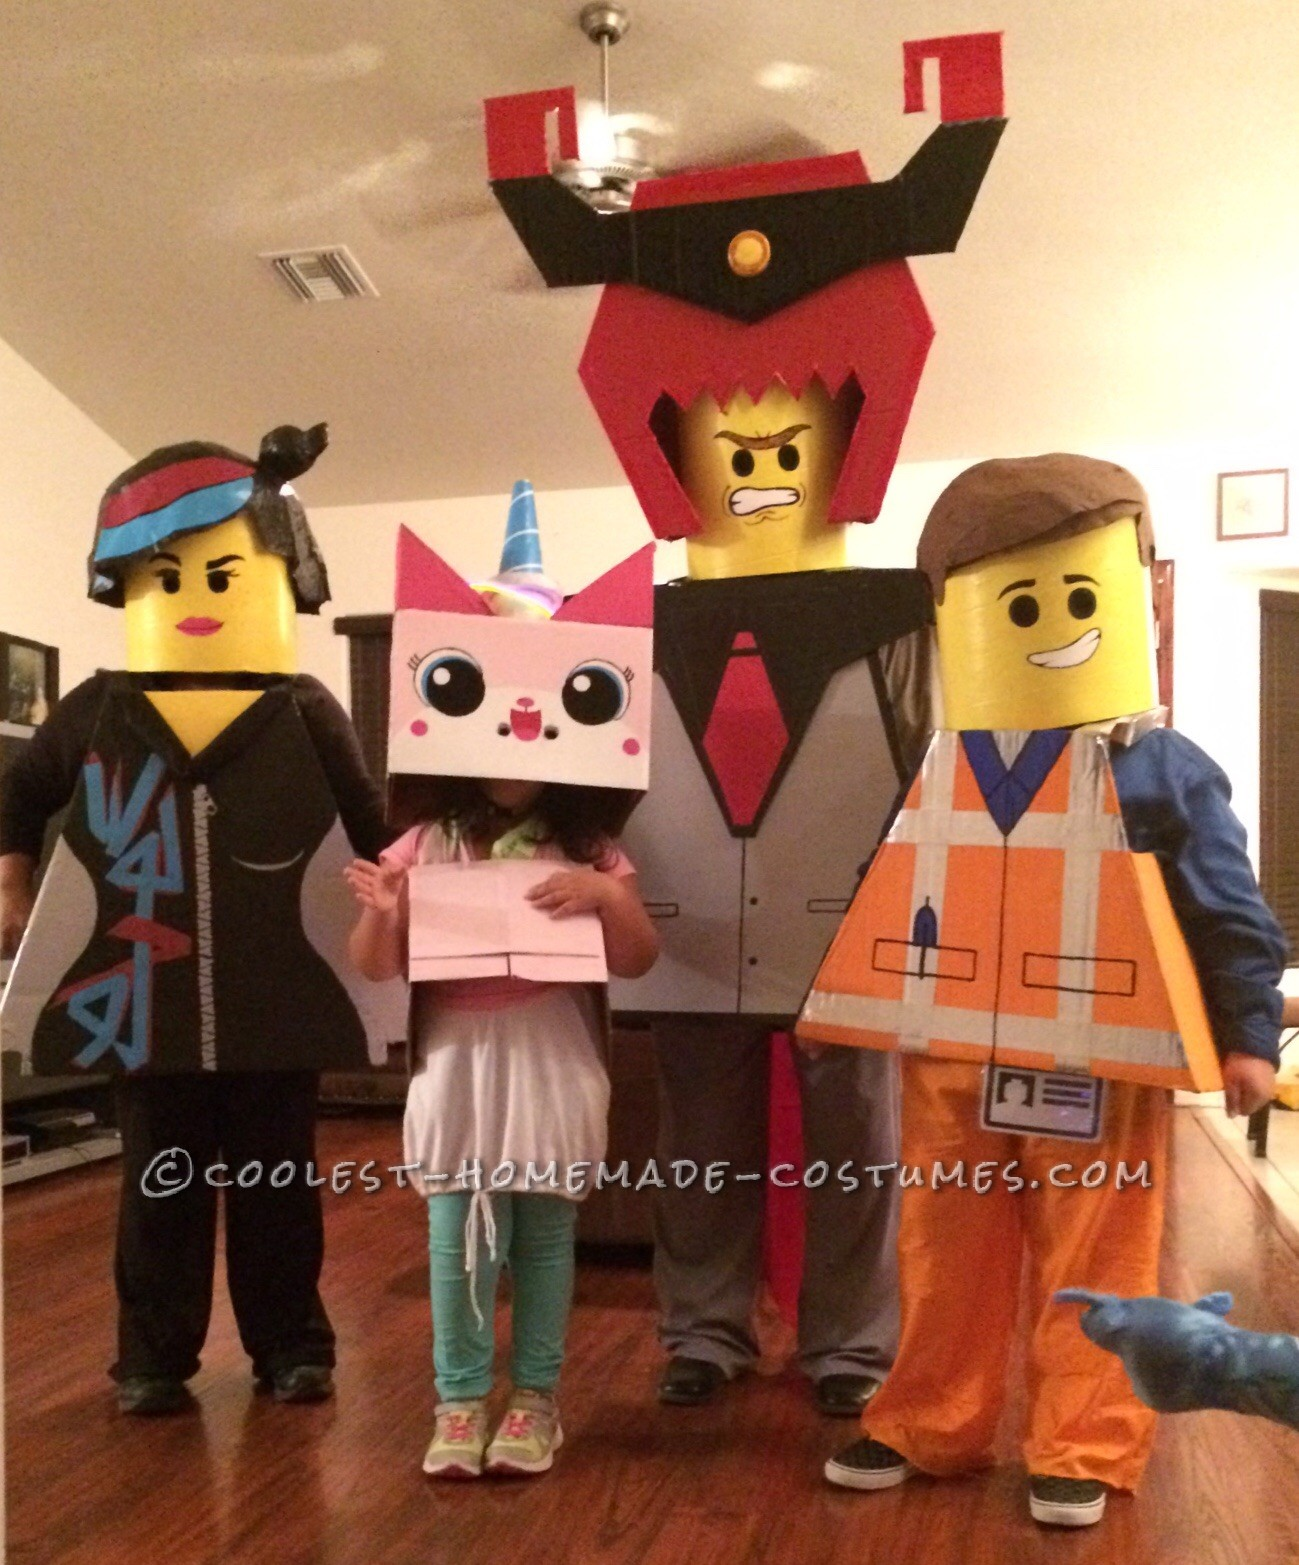 Lego Movie Obsessed Boy with Autims Gets the Whole Family to Join the Fun